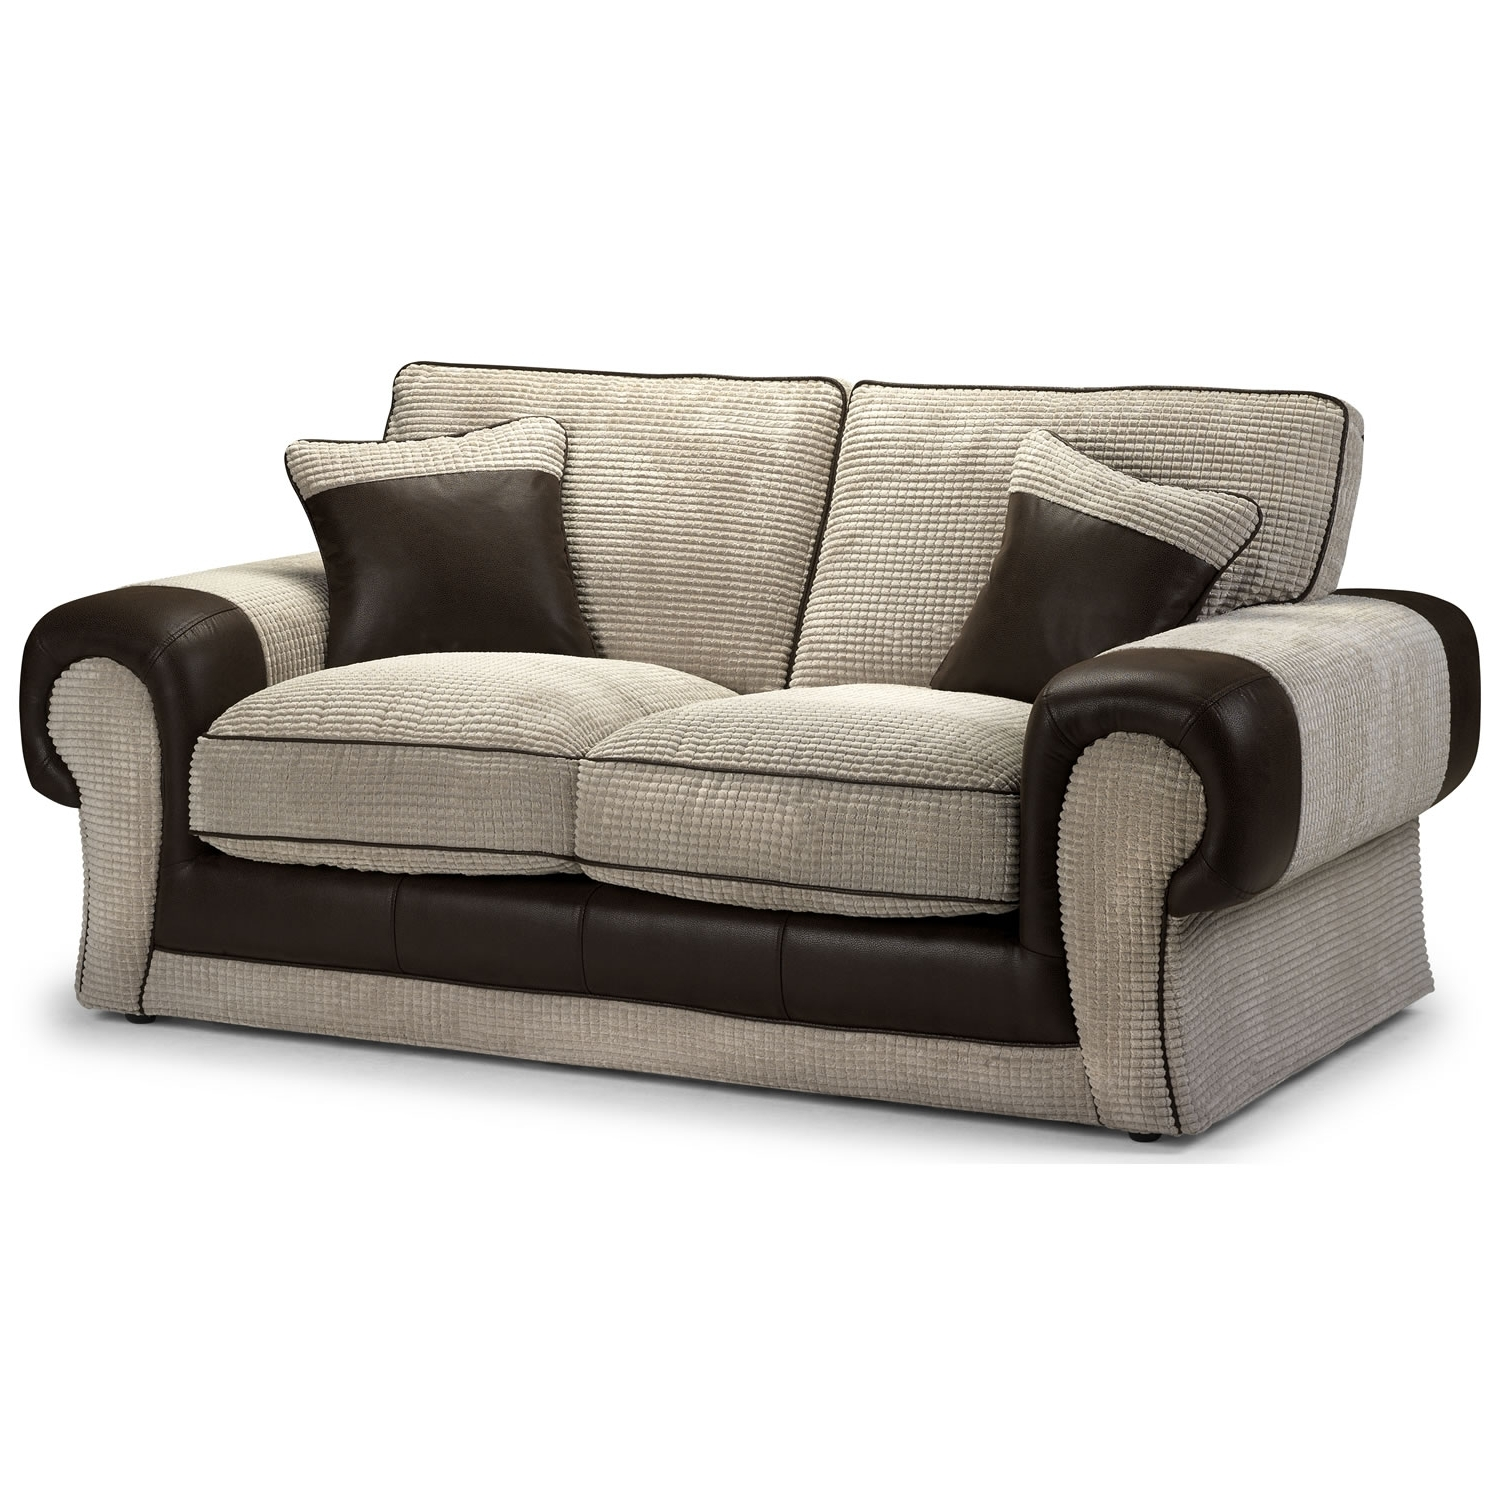 Favorite Two Seater Sofas Intended For Tangent 2 Sofa Next Day Delivery